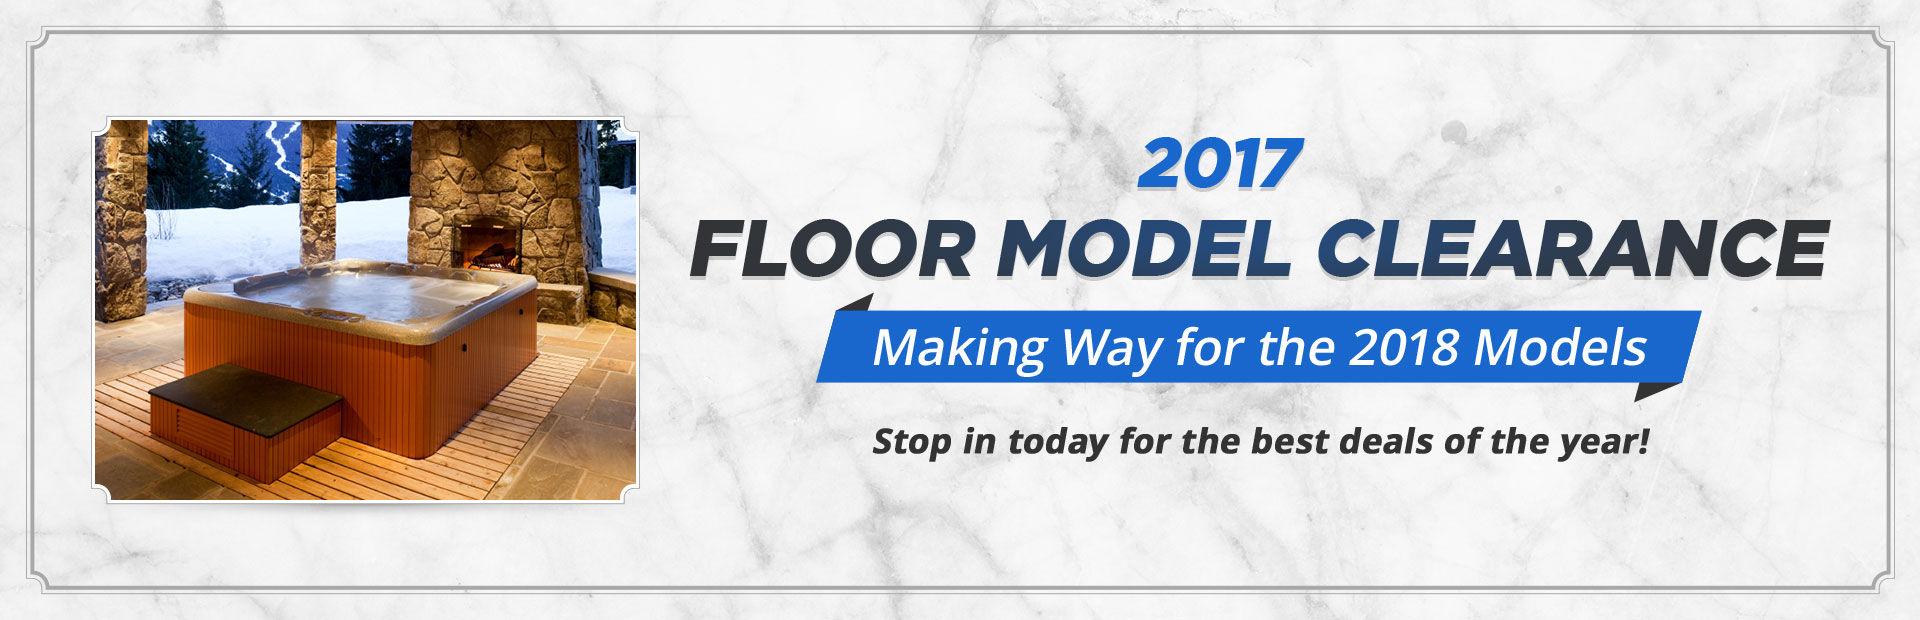 2017 Floor Model Clearance: Stop in today for the best deals of the year!